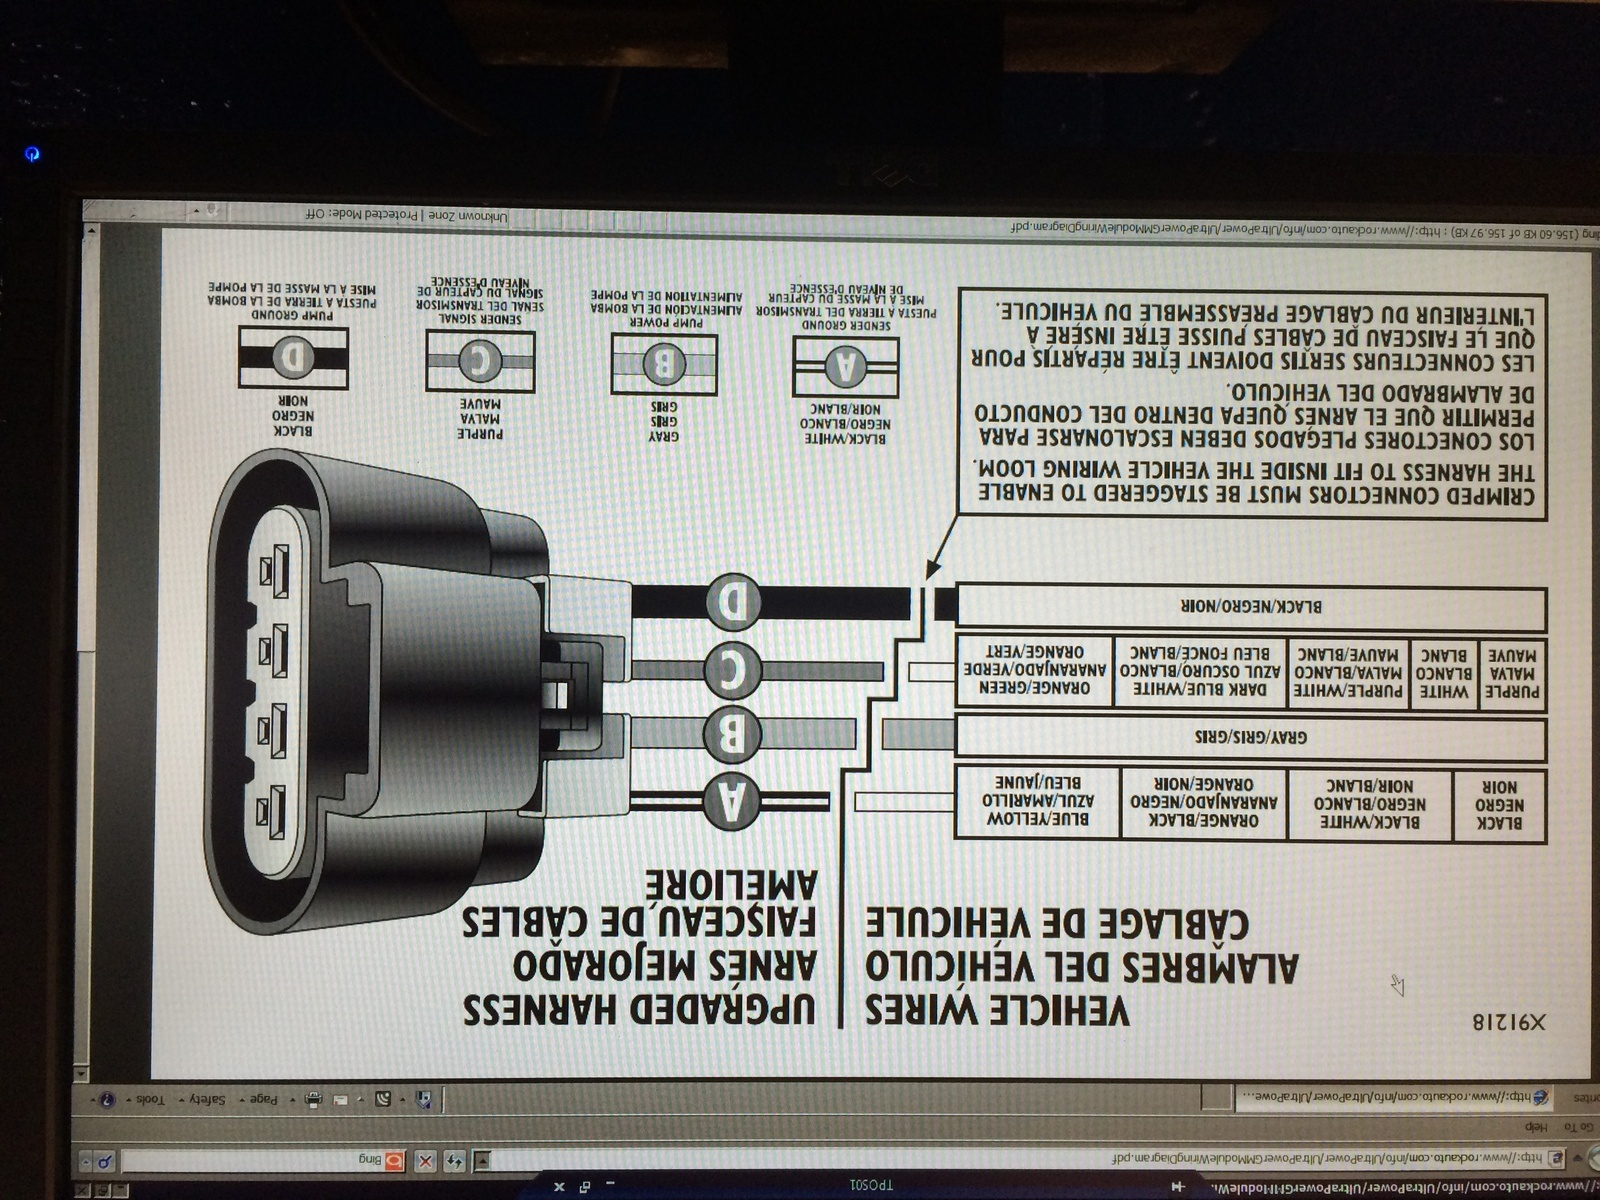 99 Gmc Sierra Fuel Pump Wiring Diagram Wiring Diagram Center Remind Shine Remind Shine Tatikids It